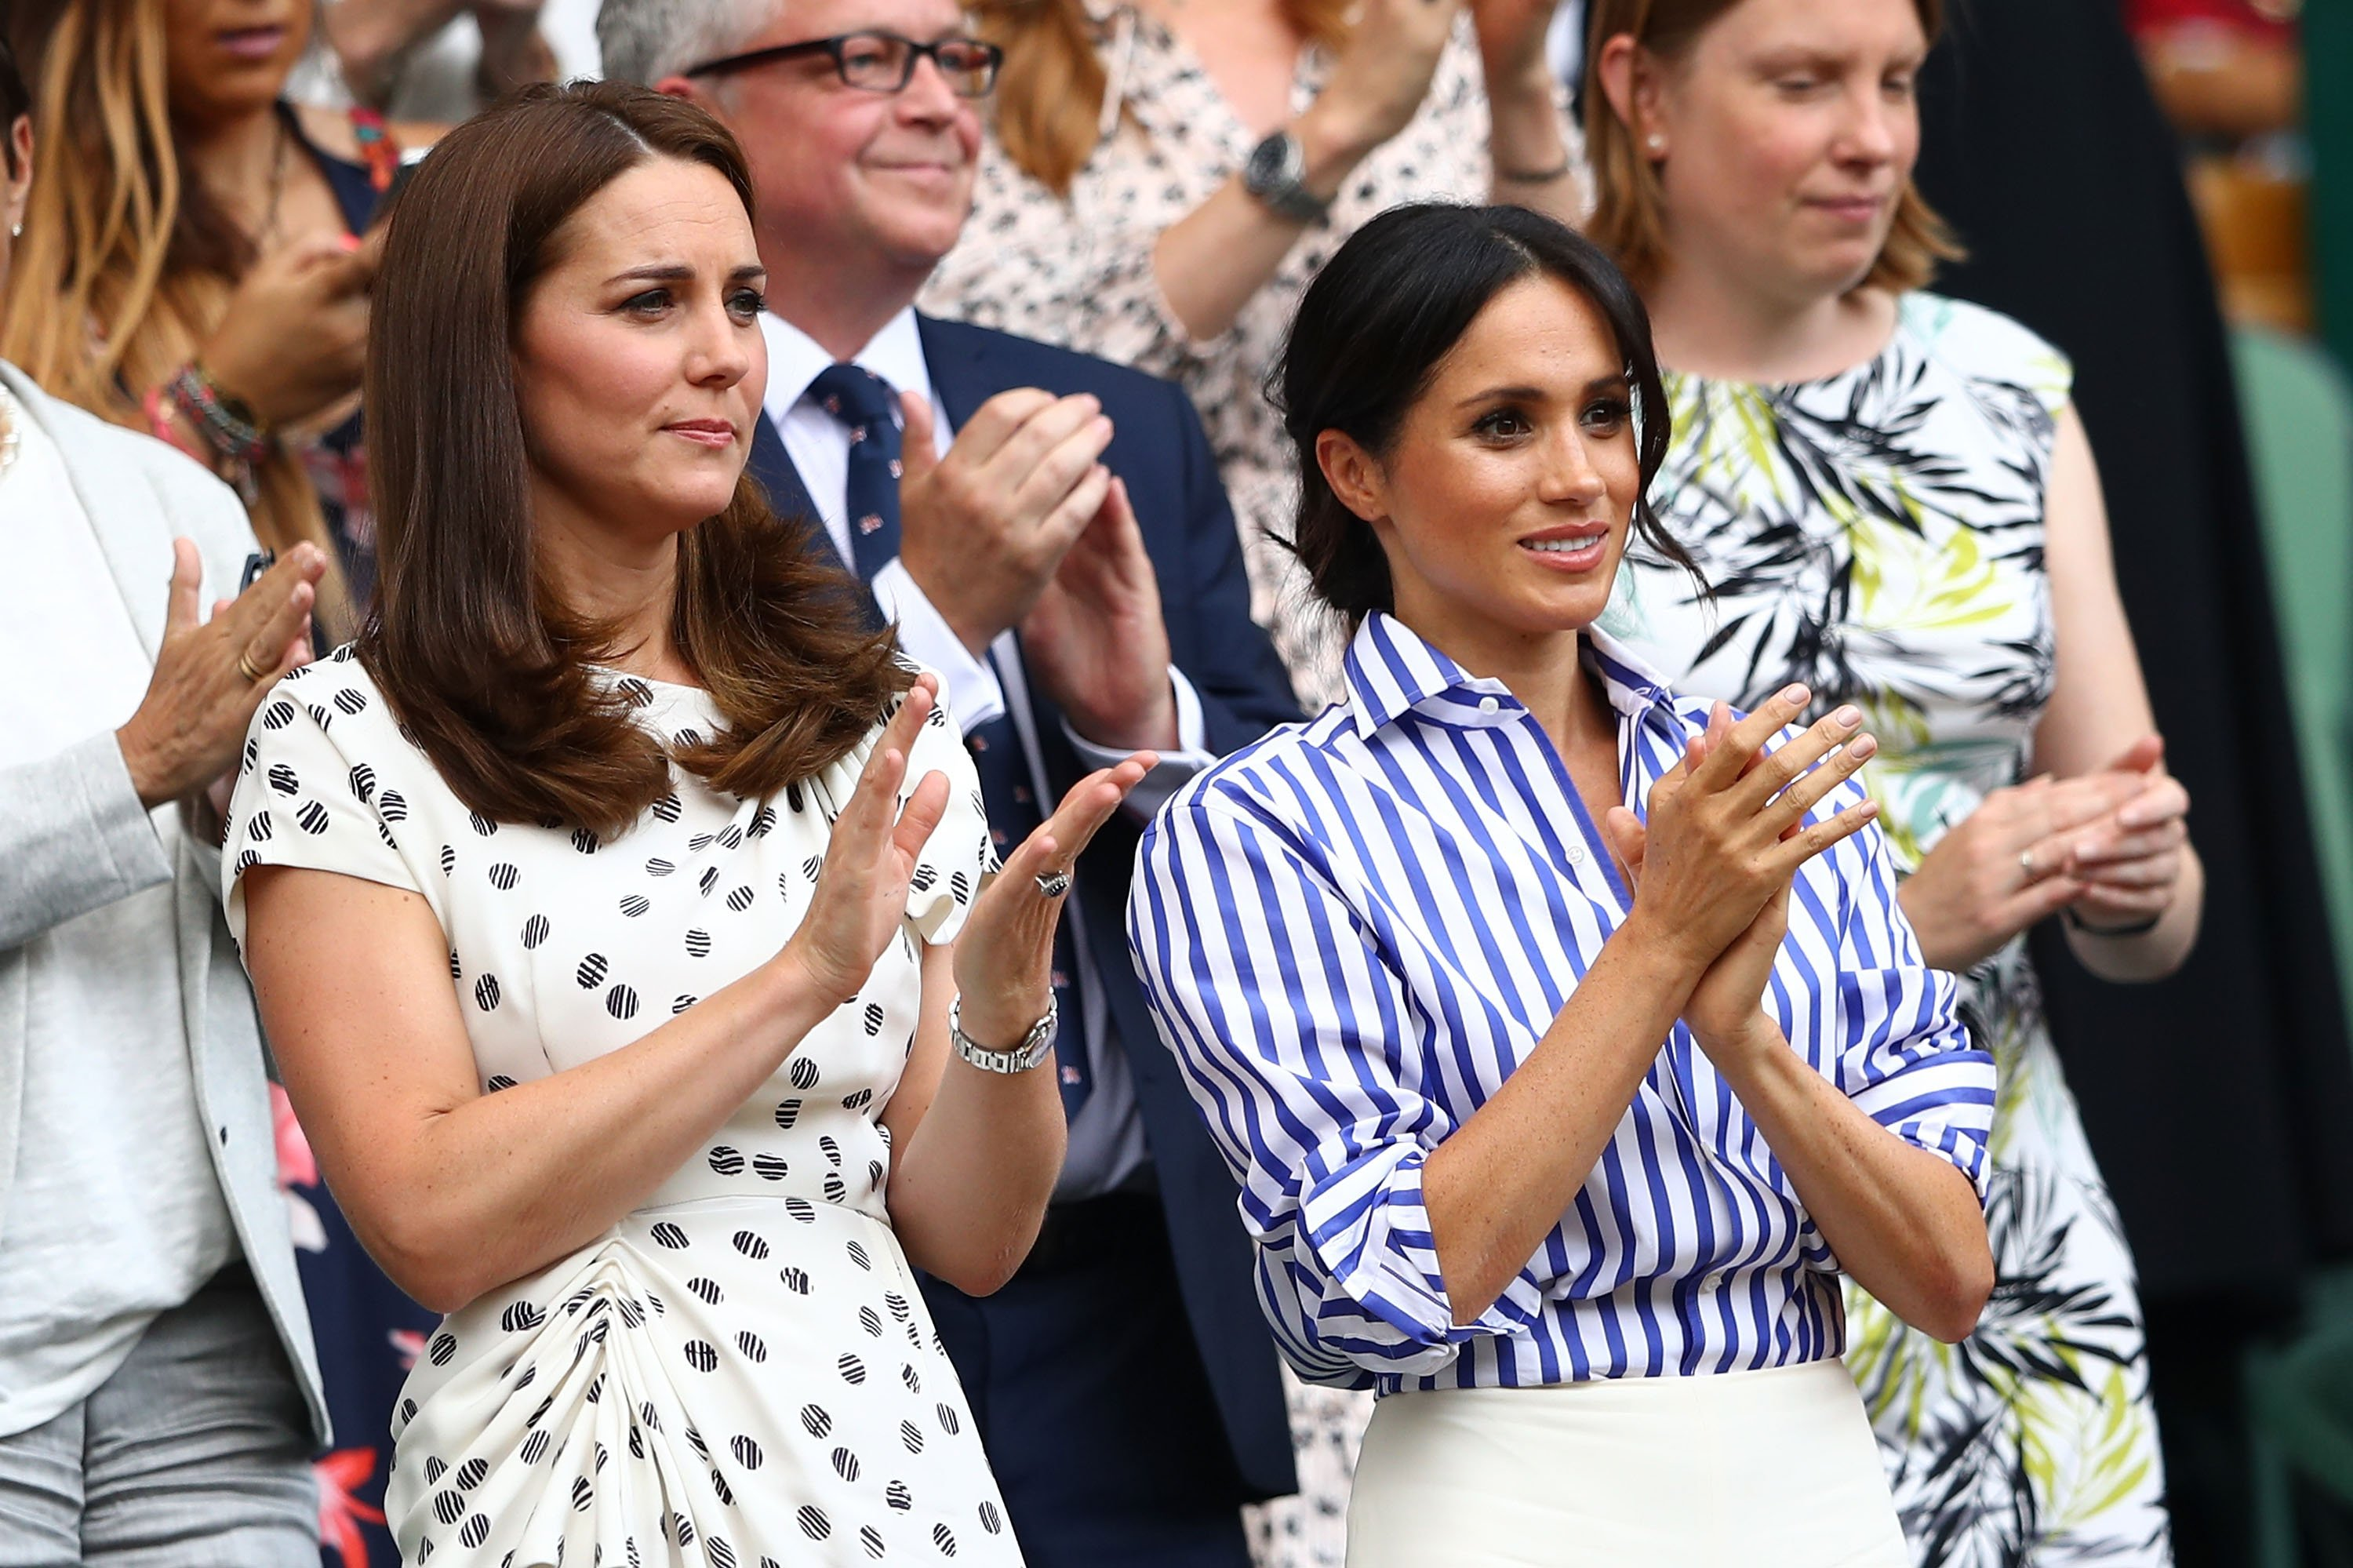 Kate Middleton and Meghan Markle applaud ahead of the Ladies' Singles final match on day twelve of the Wimbledon Lawn Tennis Championships at All England Lawn Tennis and Croquet Club on July 14, 2018 in London, England | Photo: Getty Images